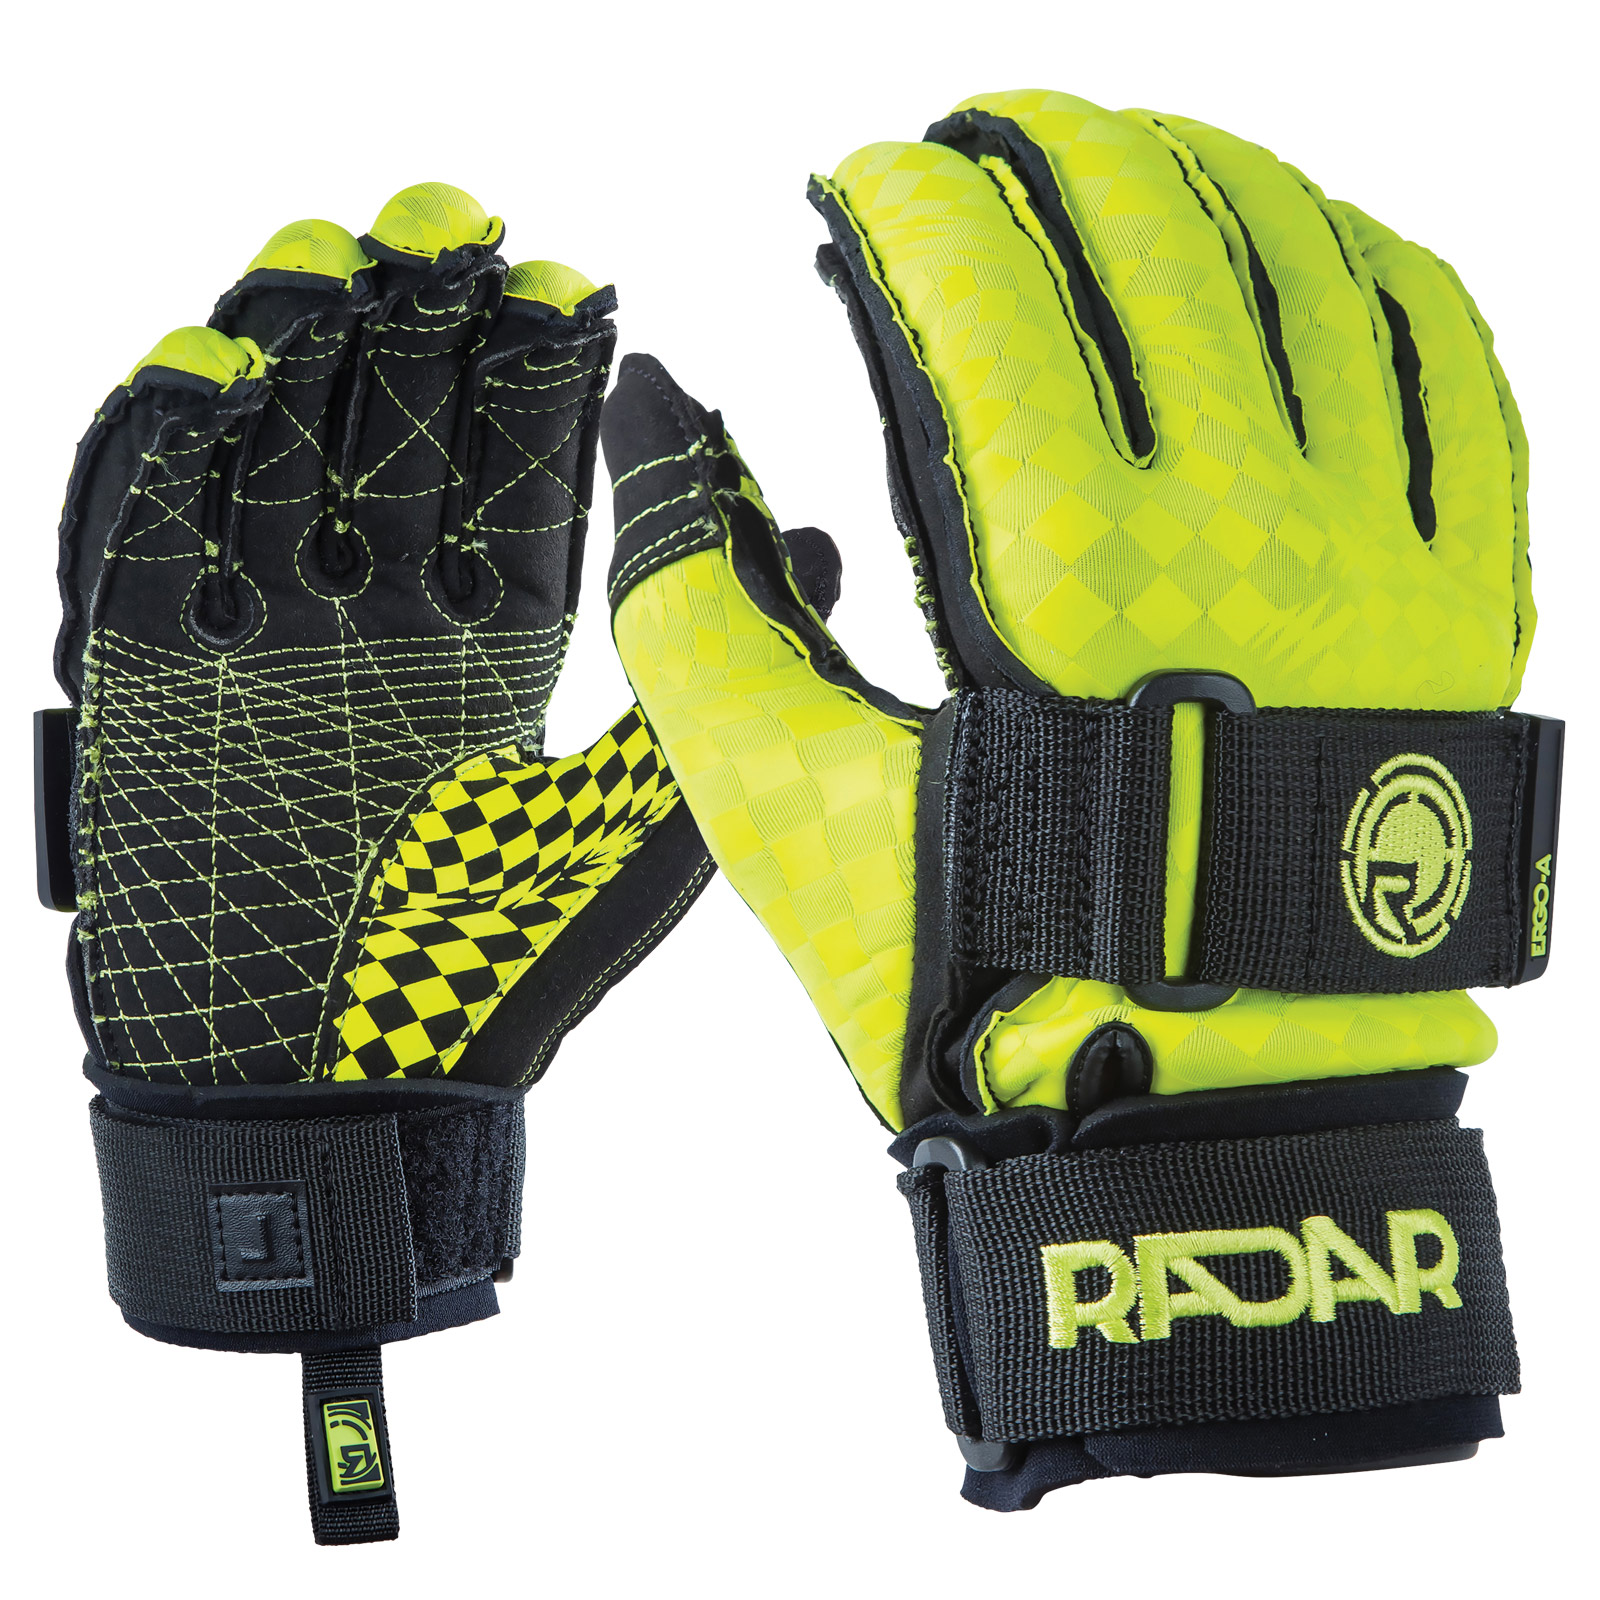 ERGO-A INSIDEOUT GLOVE - YELLOW RADAR 2017